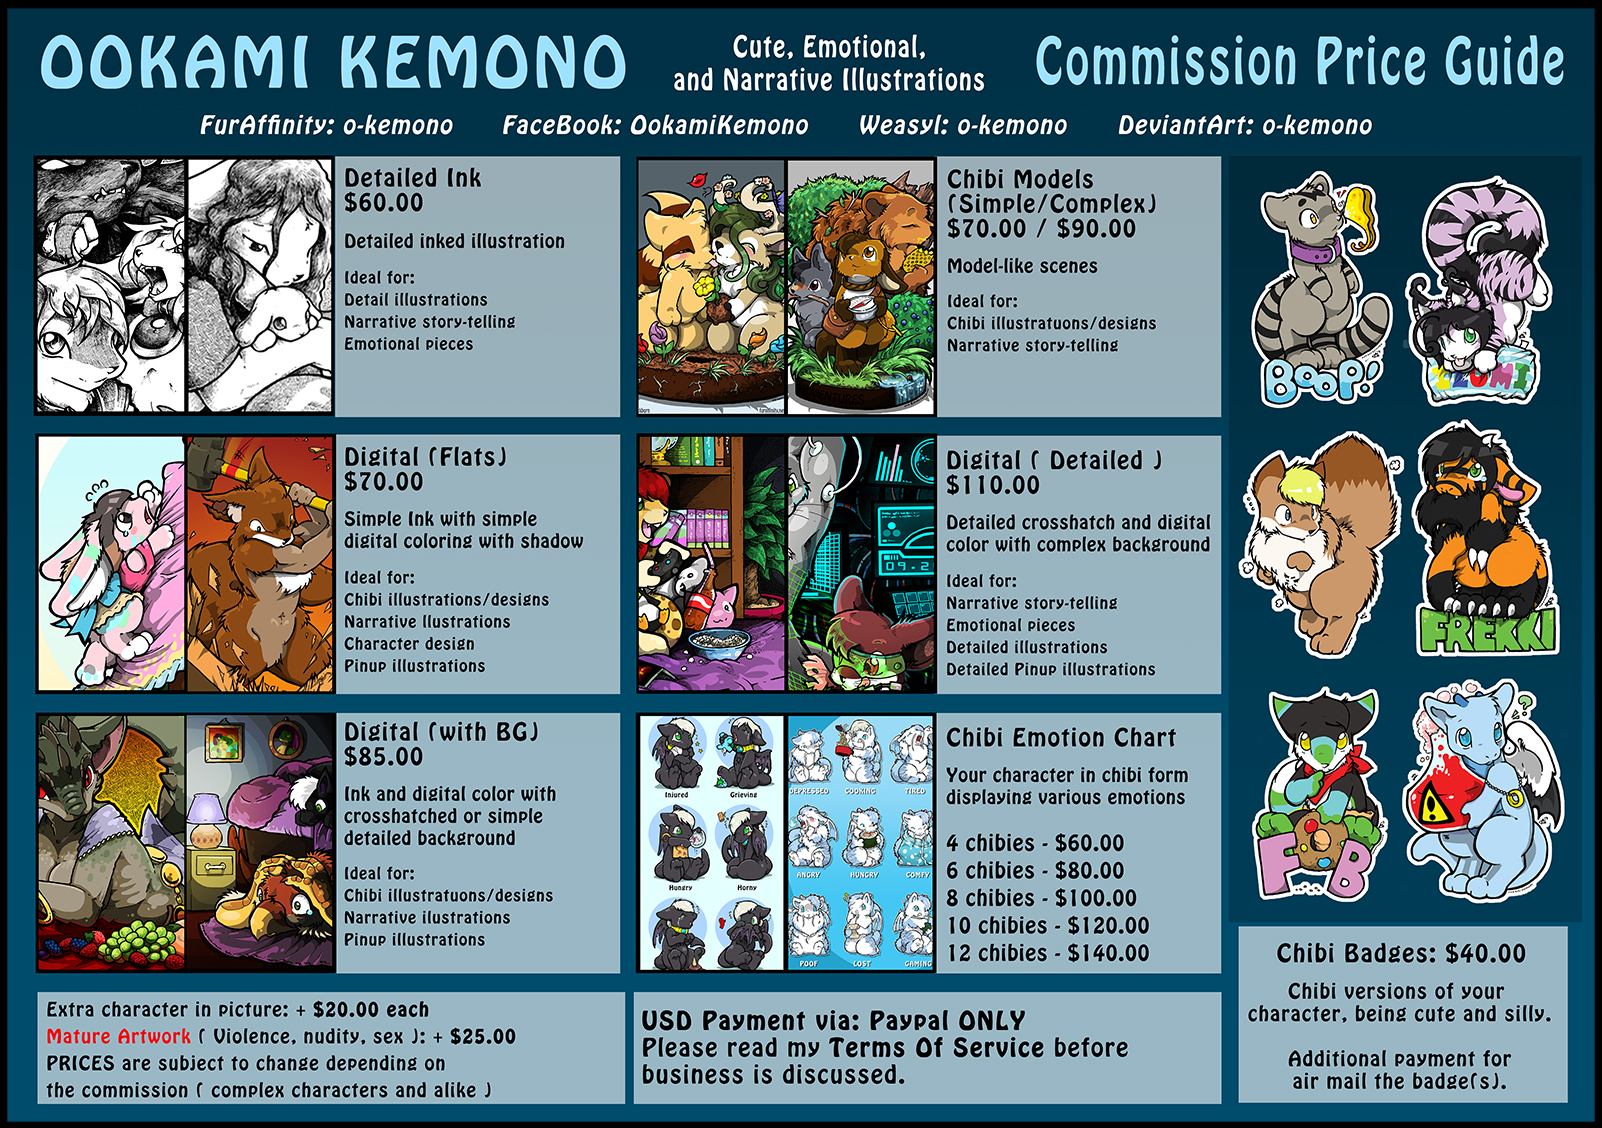 2015 Commission Price Guide — Weasyl